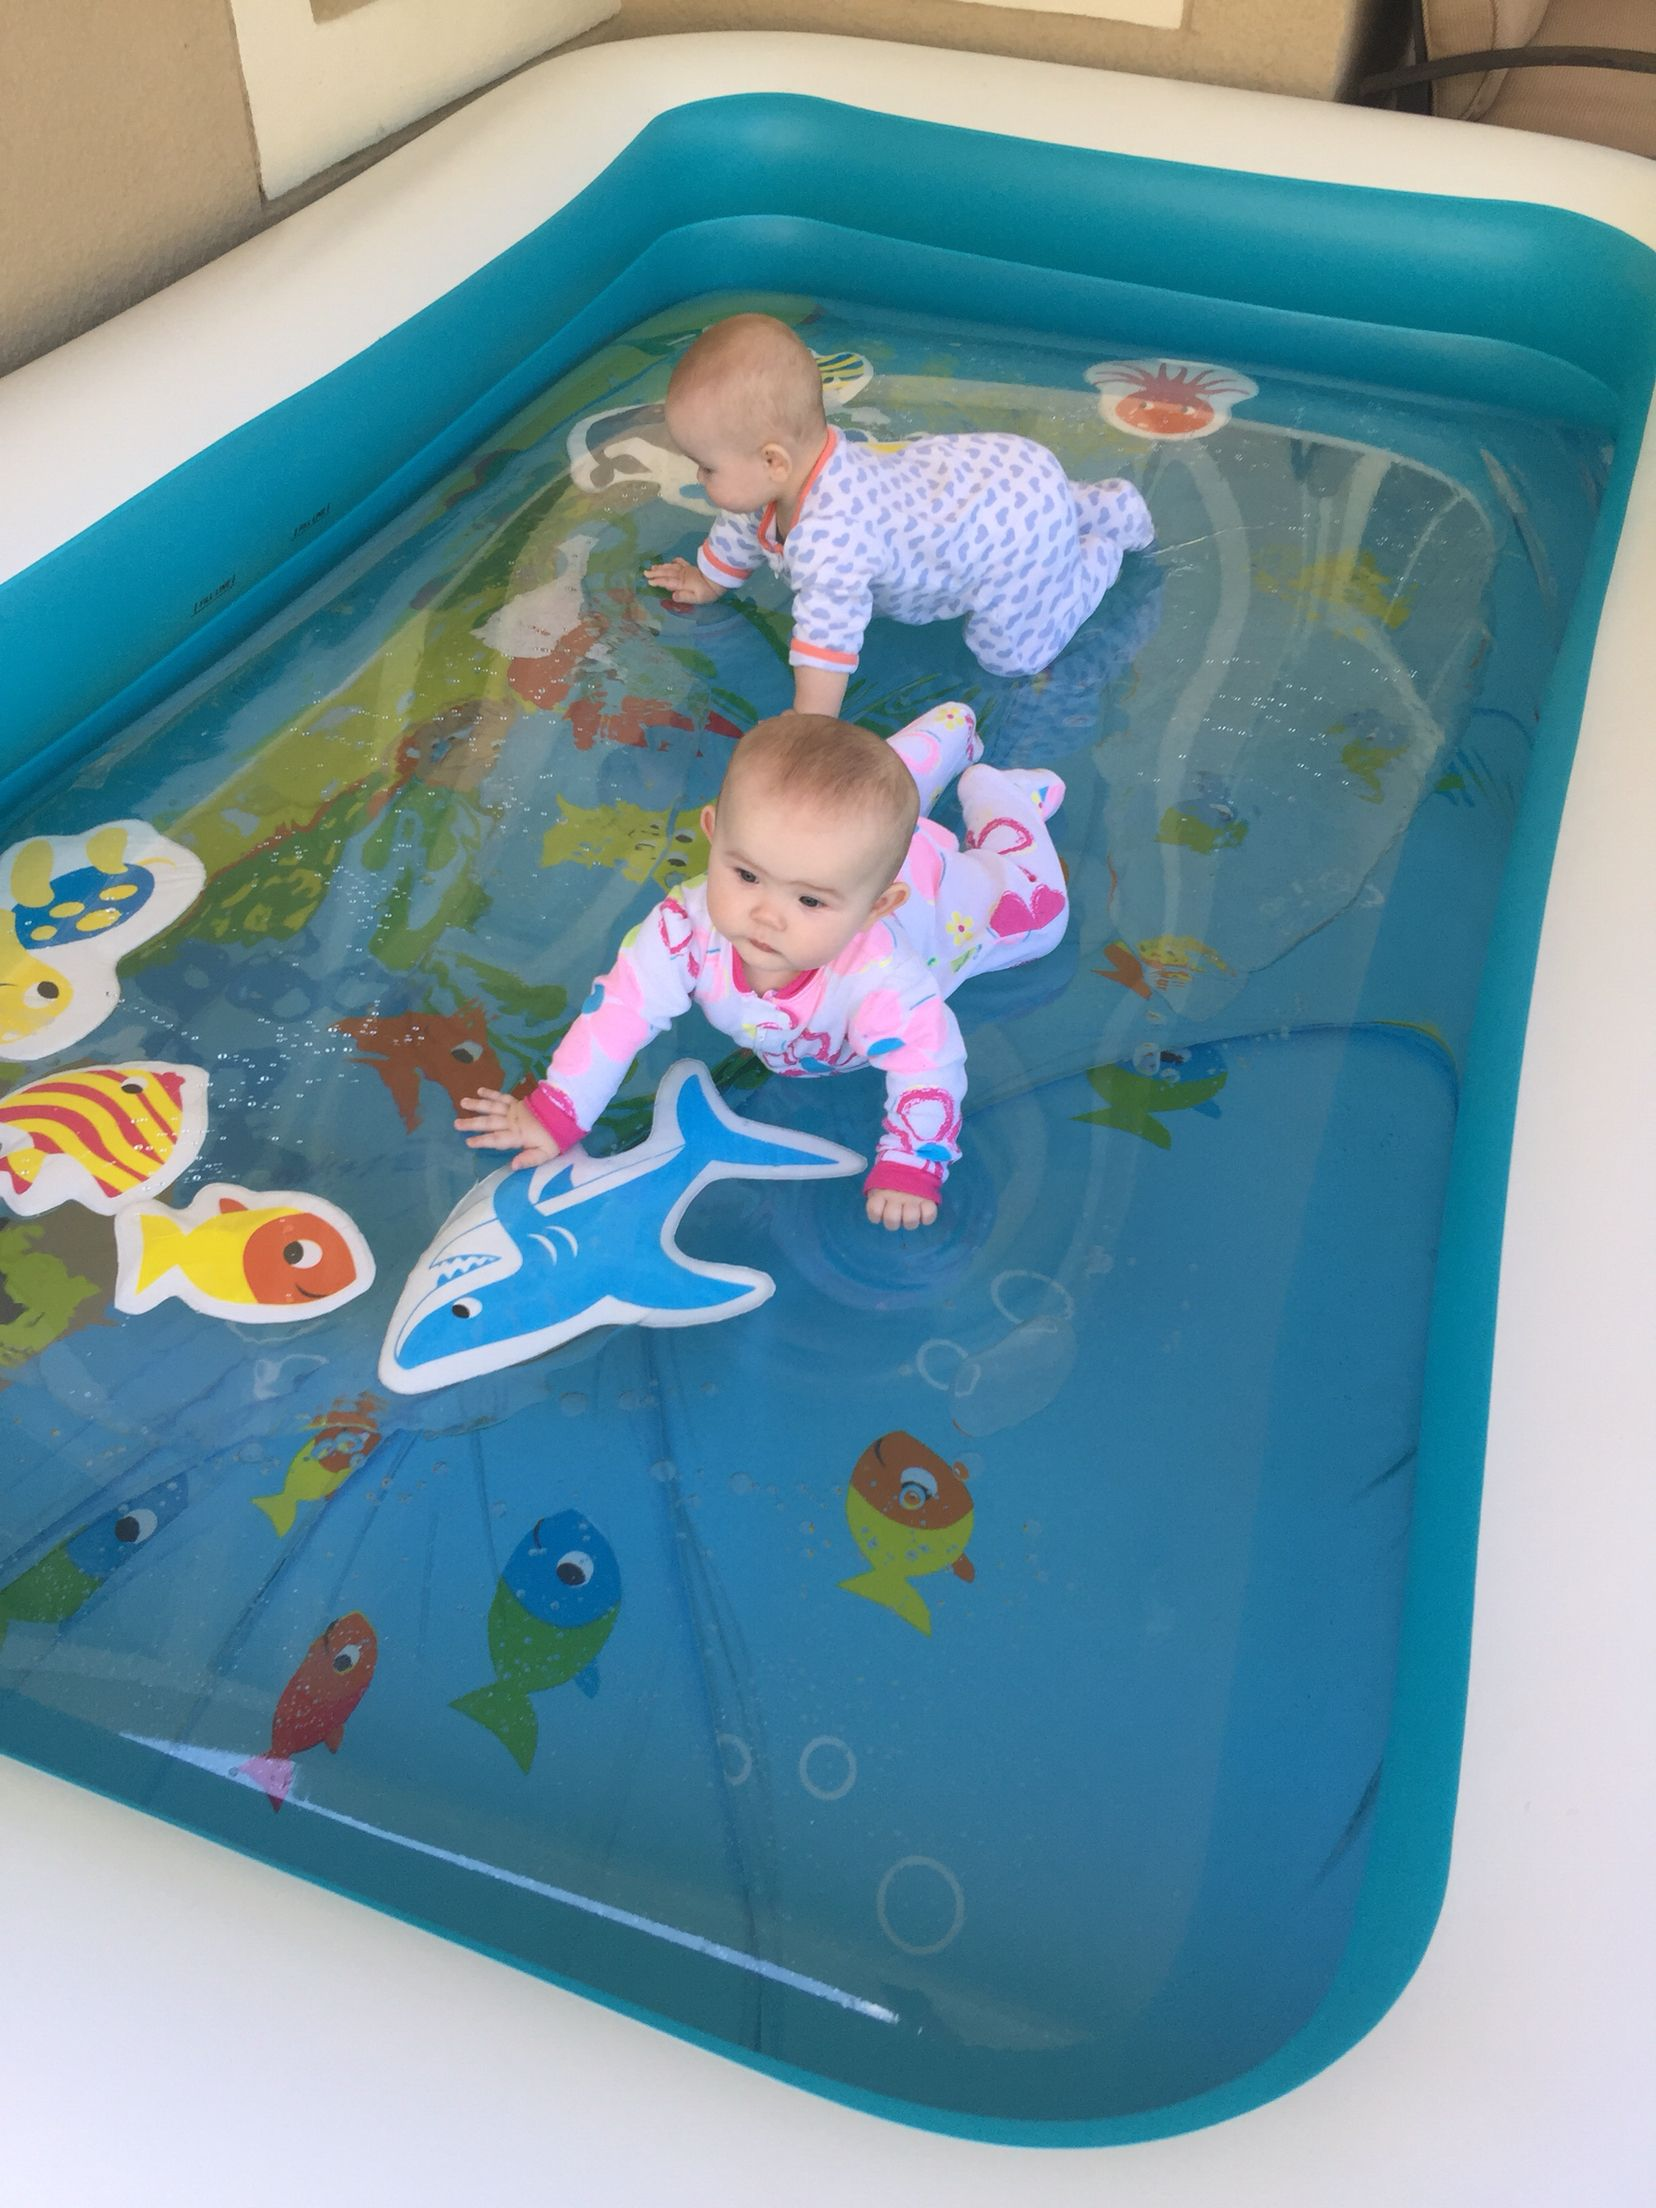 Put the water blob inside a blow up pool for little ones to play on!